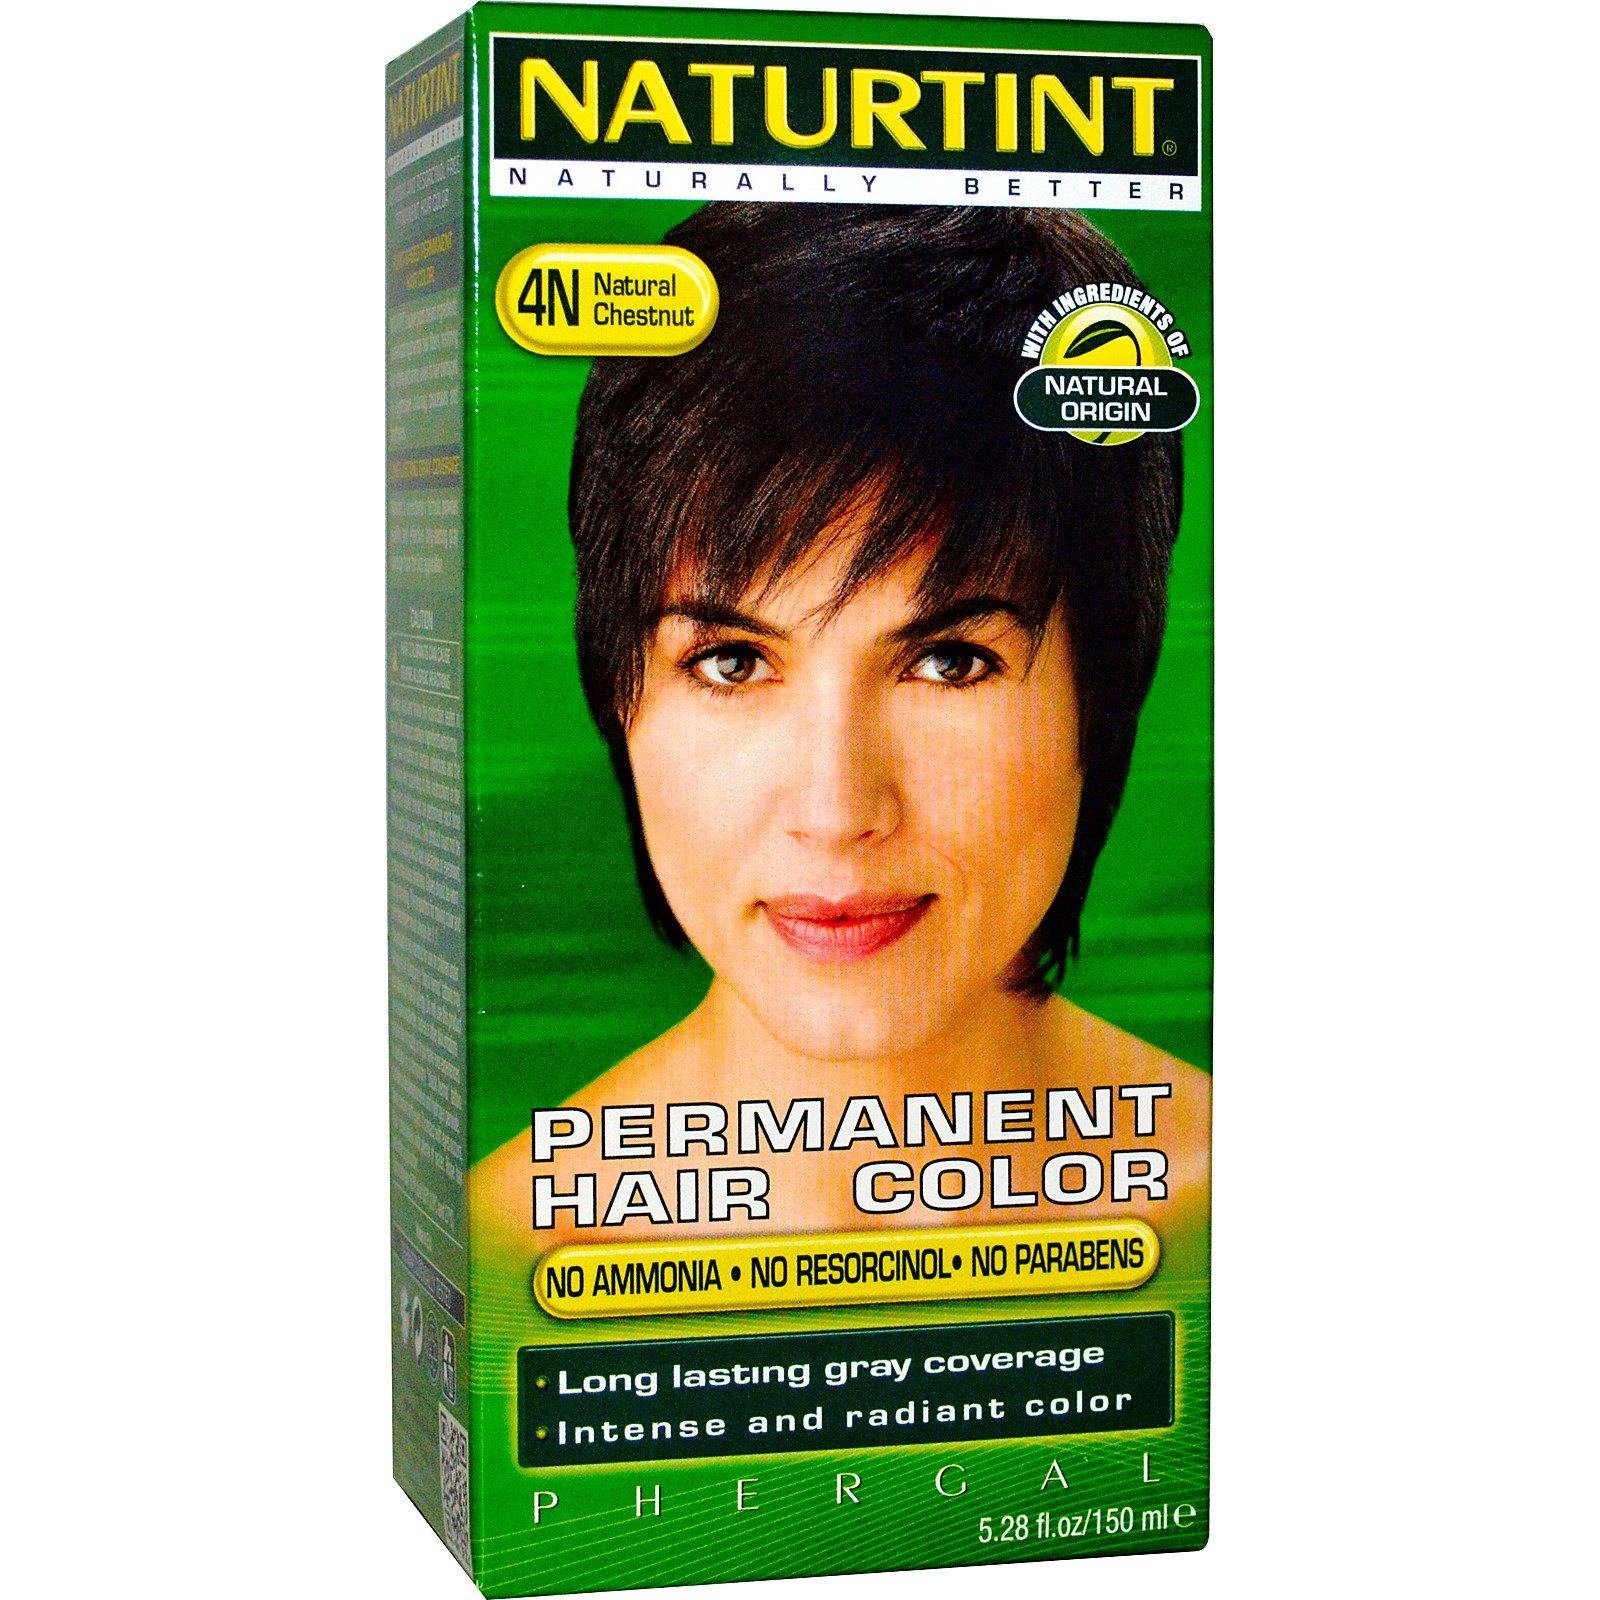 Naturtint Permanent Hair Color 4n Natural Chestnut 528 Fl Oz